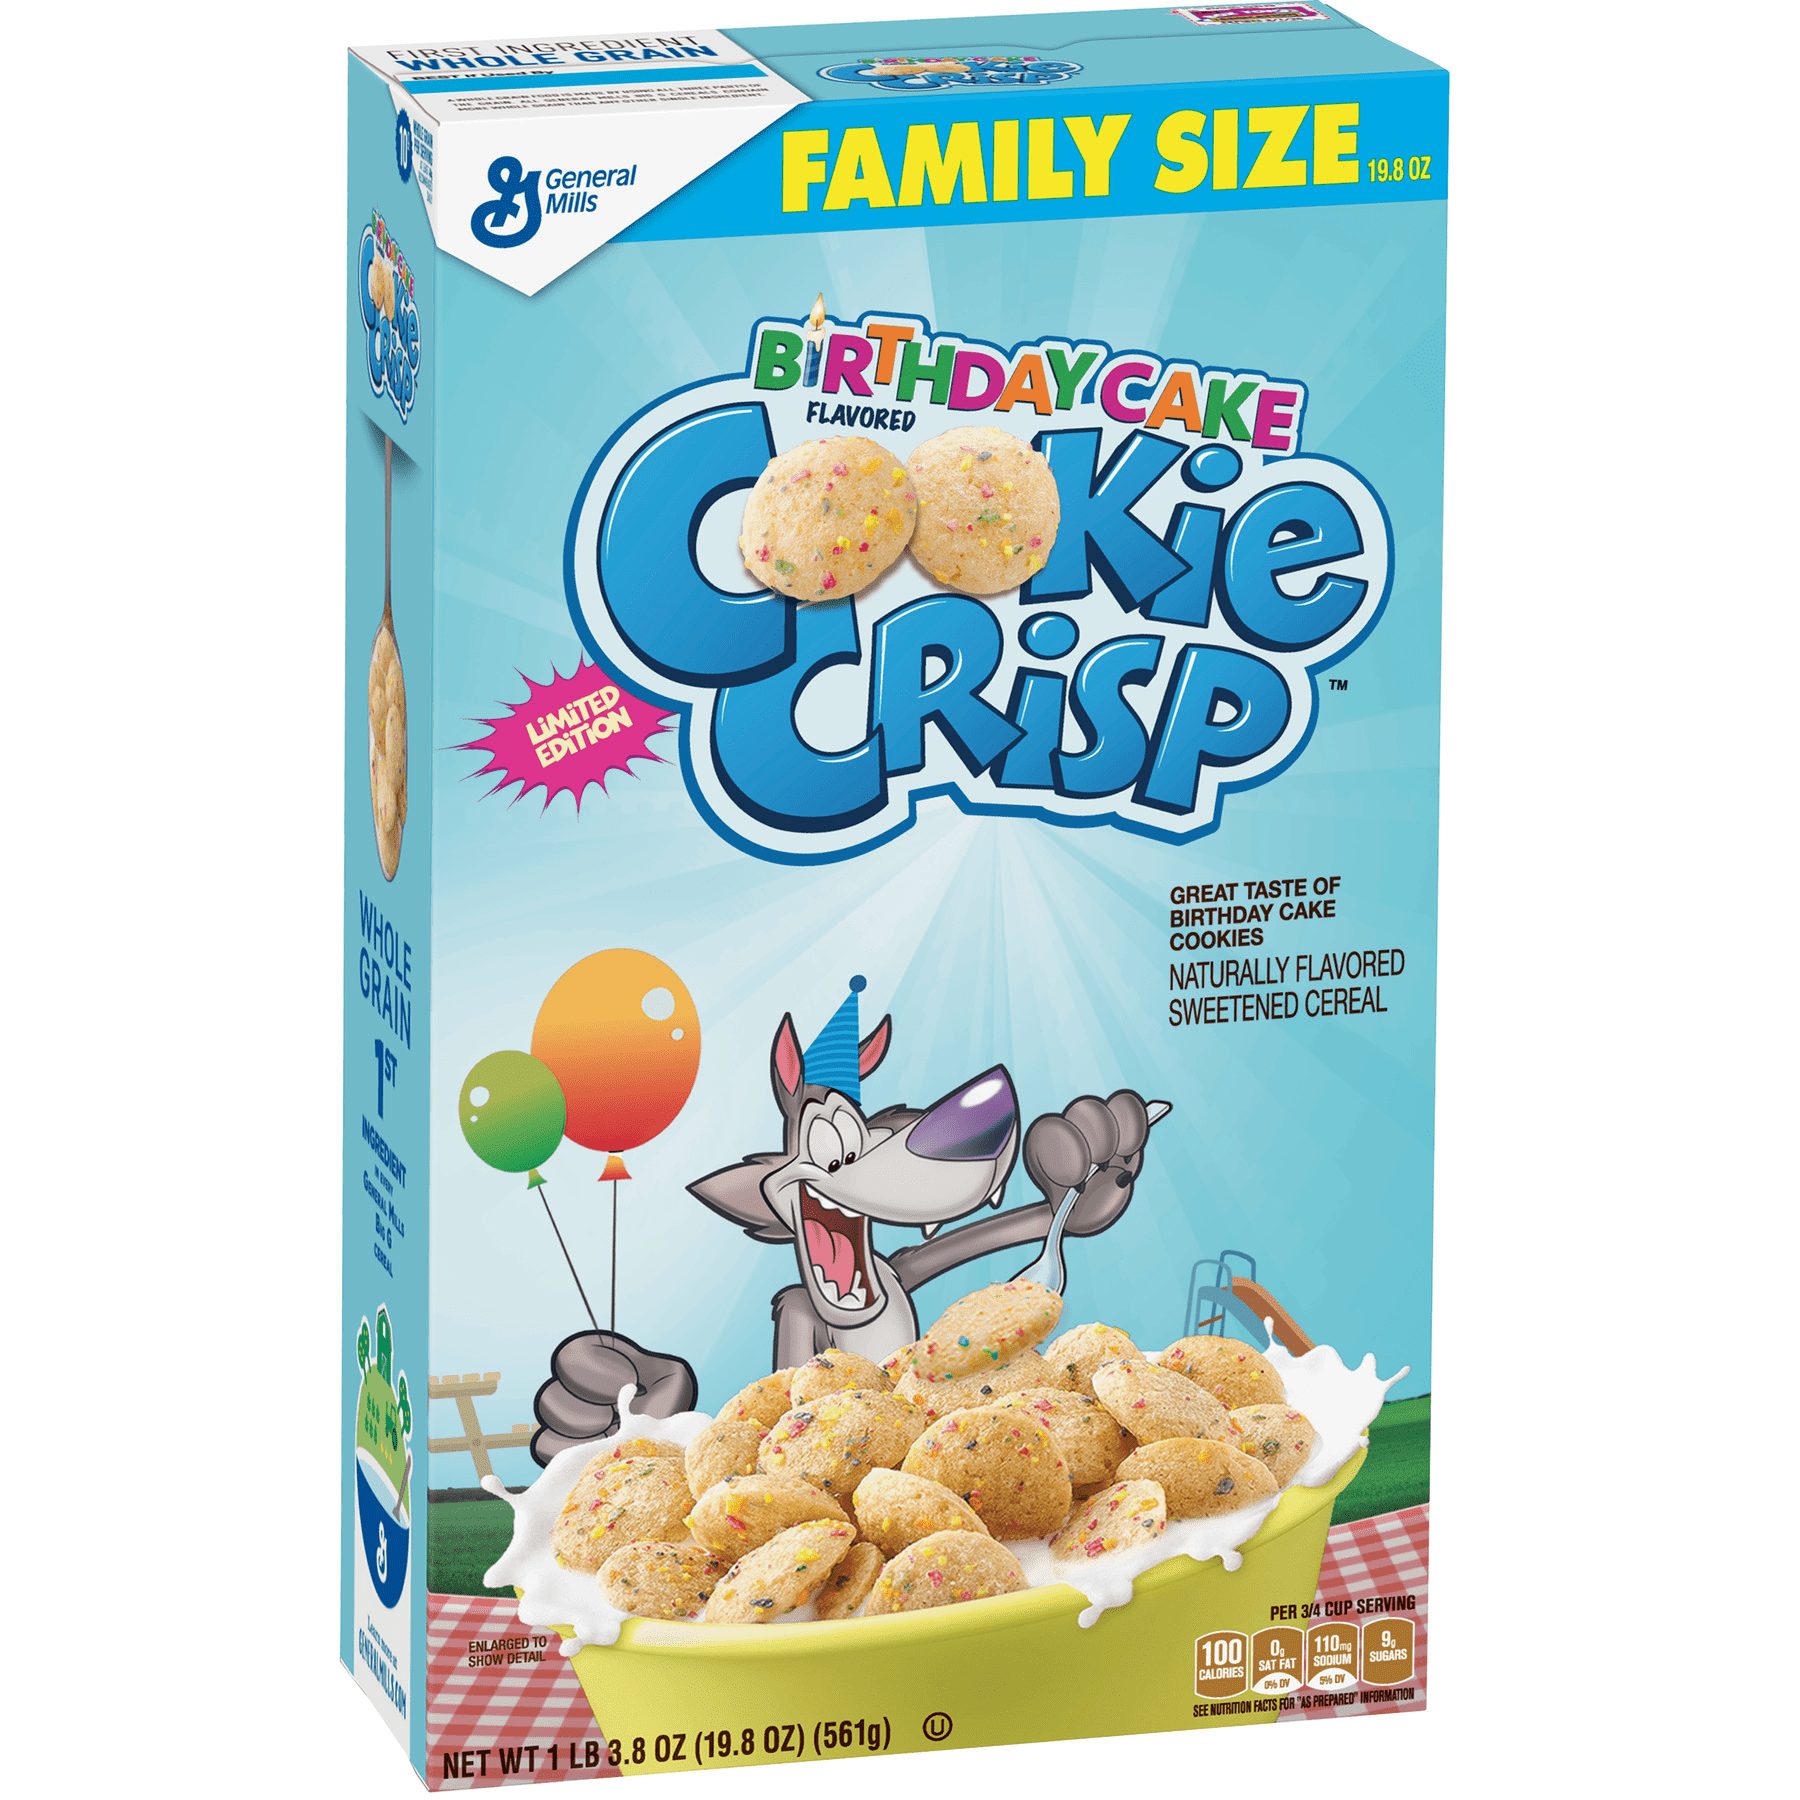 Birthday Cake Cookie Crisp box